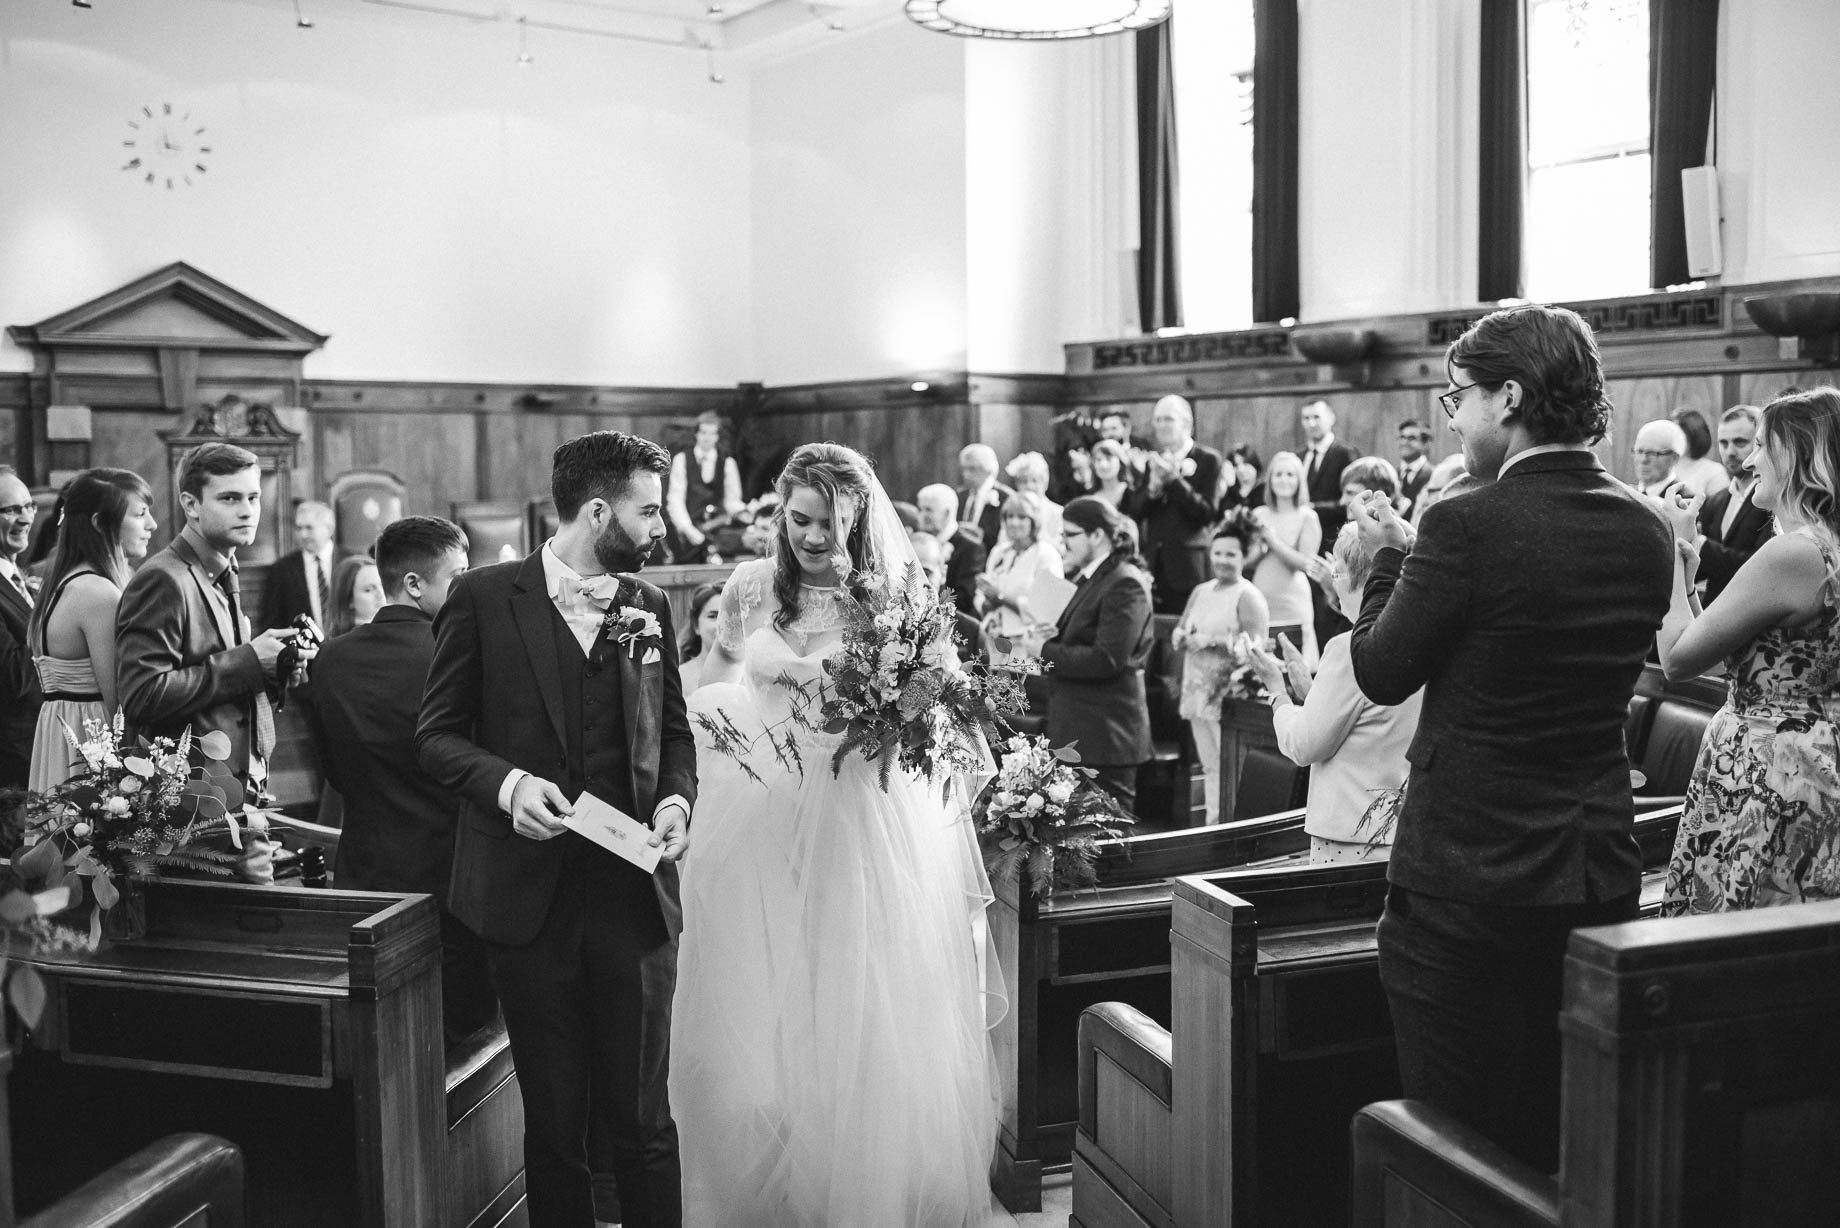 London Wedding Photography - Guy Collier Photography - LJ + Russell (65 of 155)